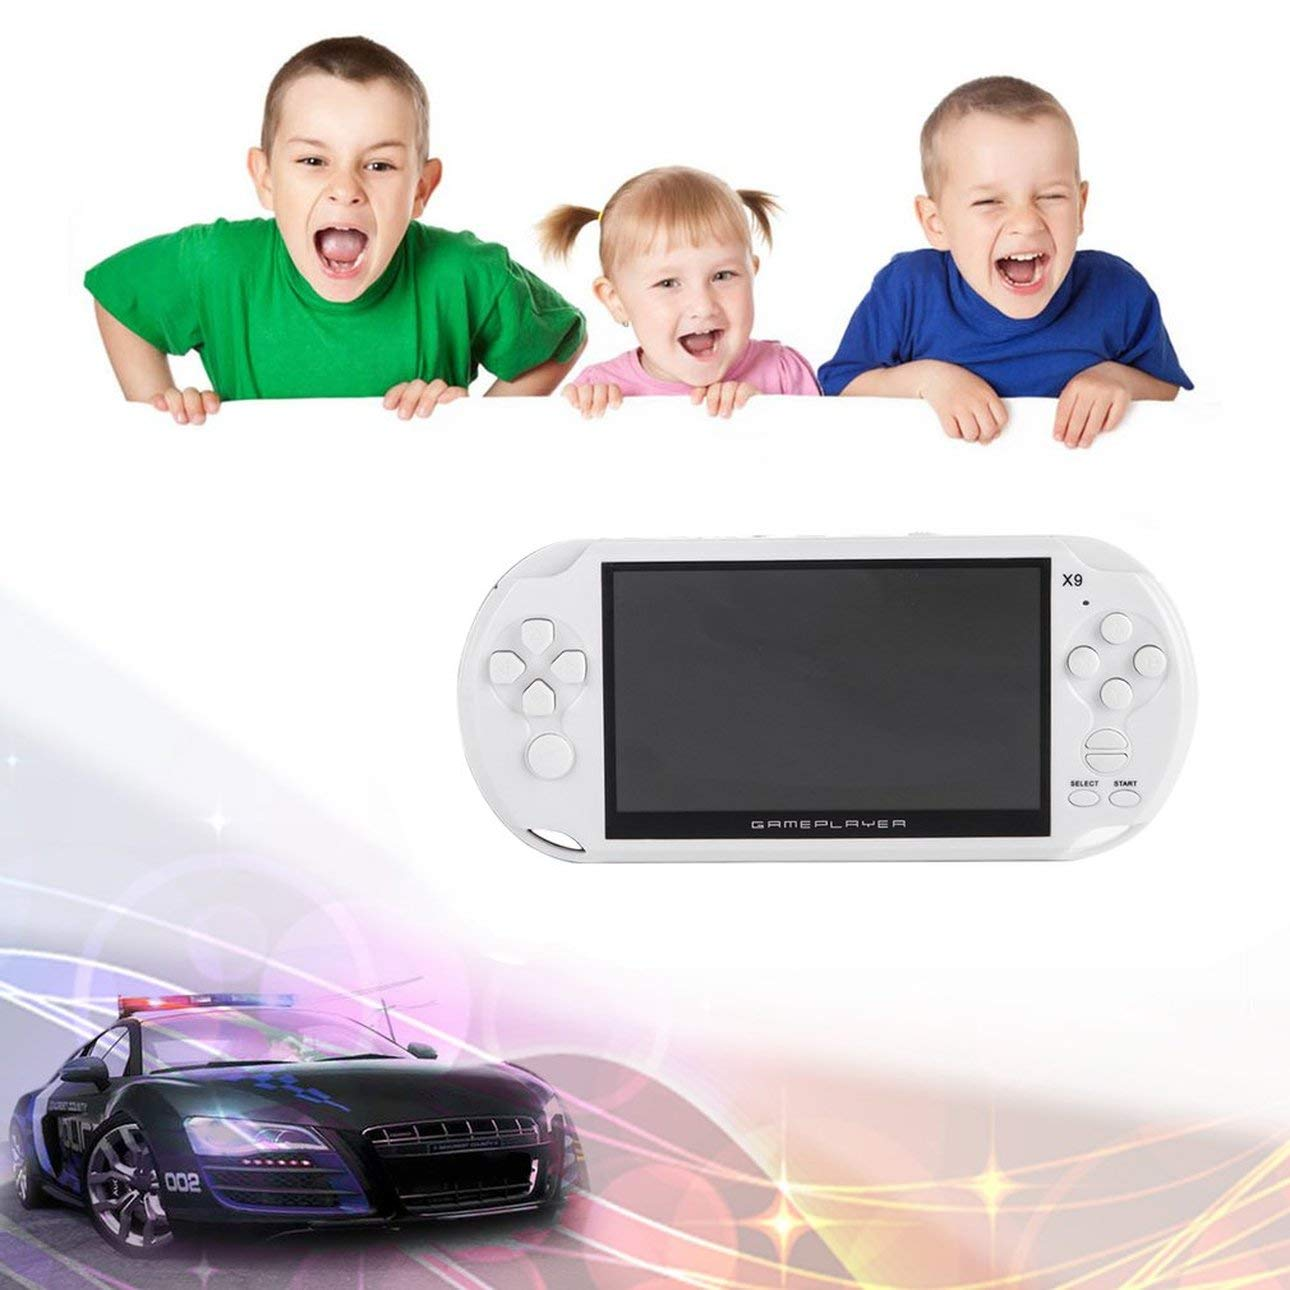 Smartlove1P Portable Size 5.0 Inch Large Screen 8GB Game Console Handheld Game Player MP3 Player Gamepad with Classic Games by Smartlove1P (Image #4)